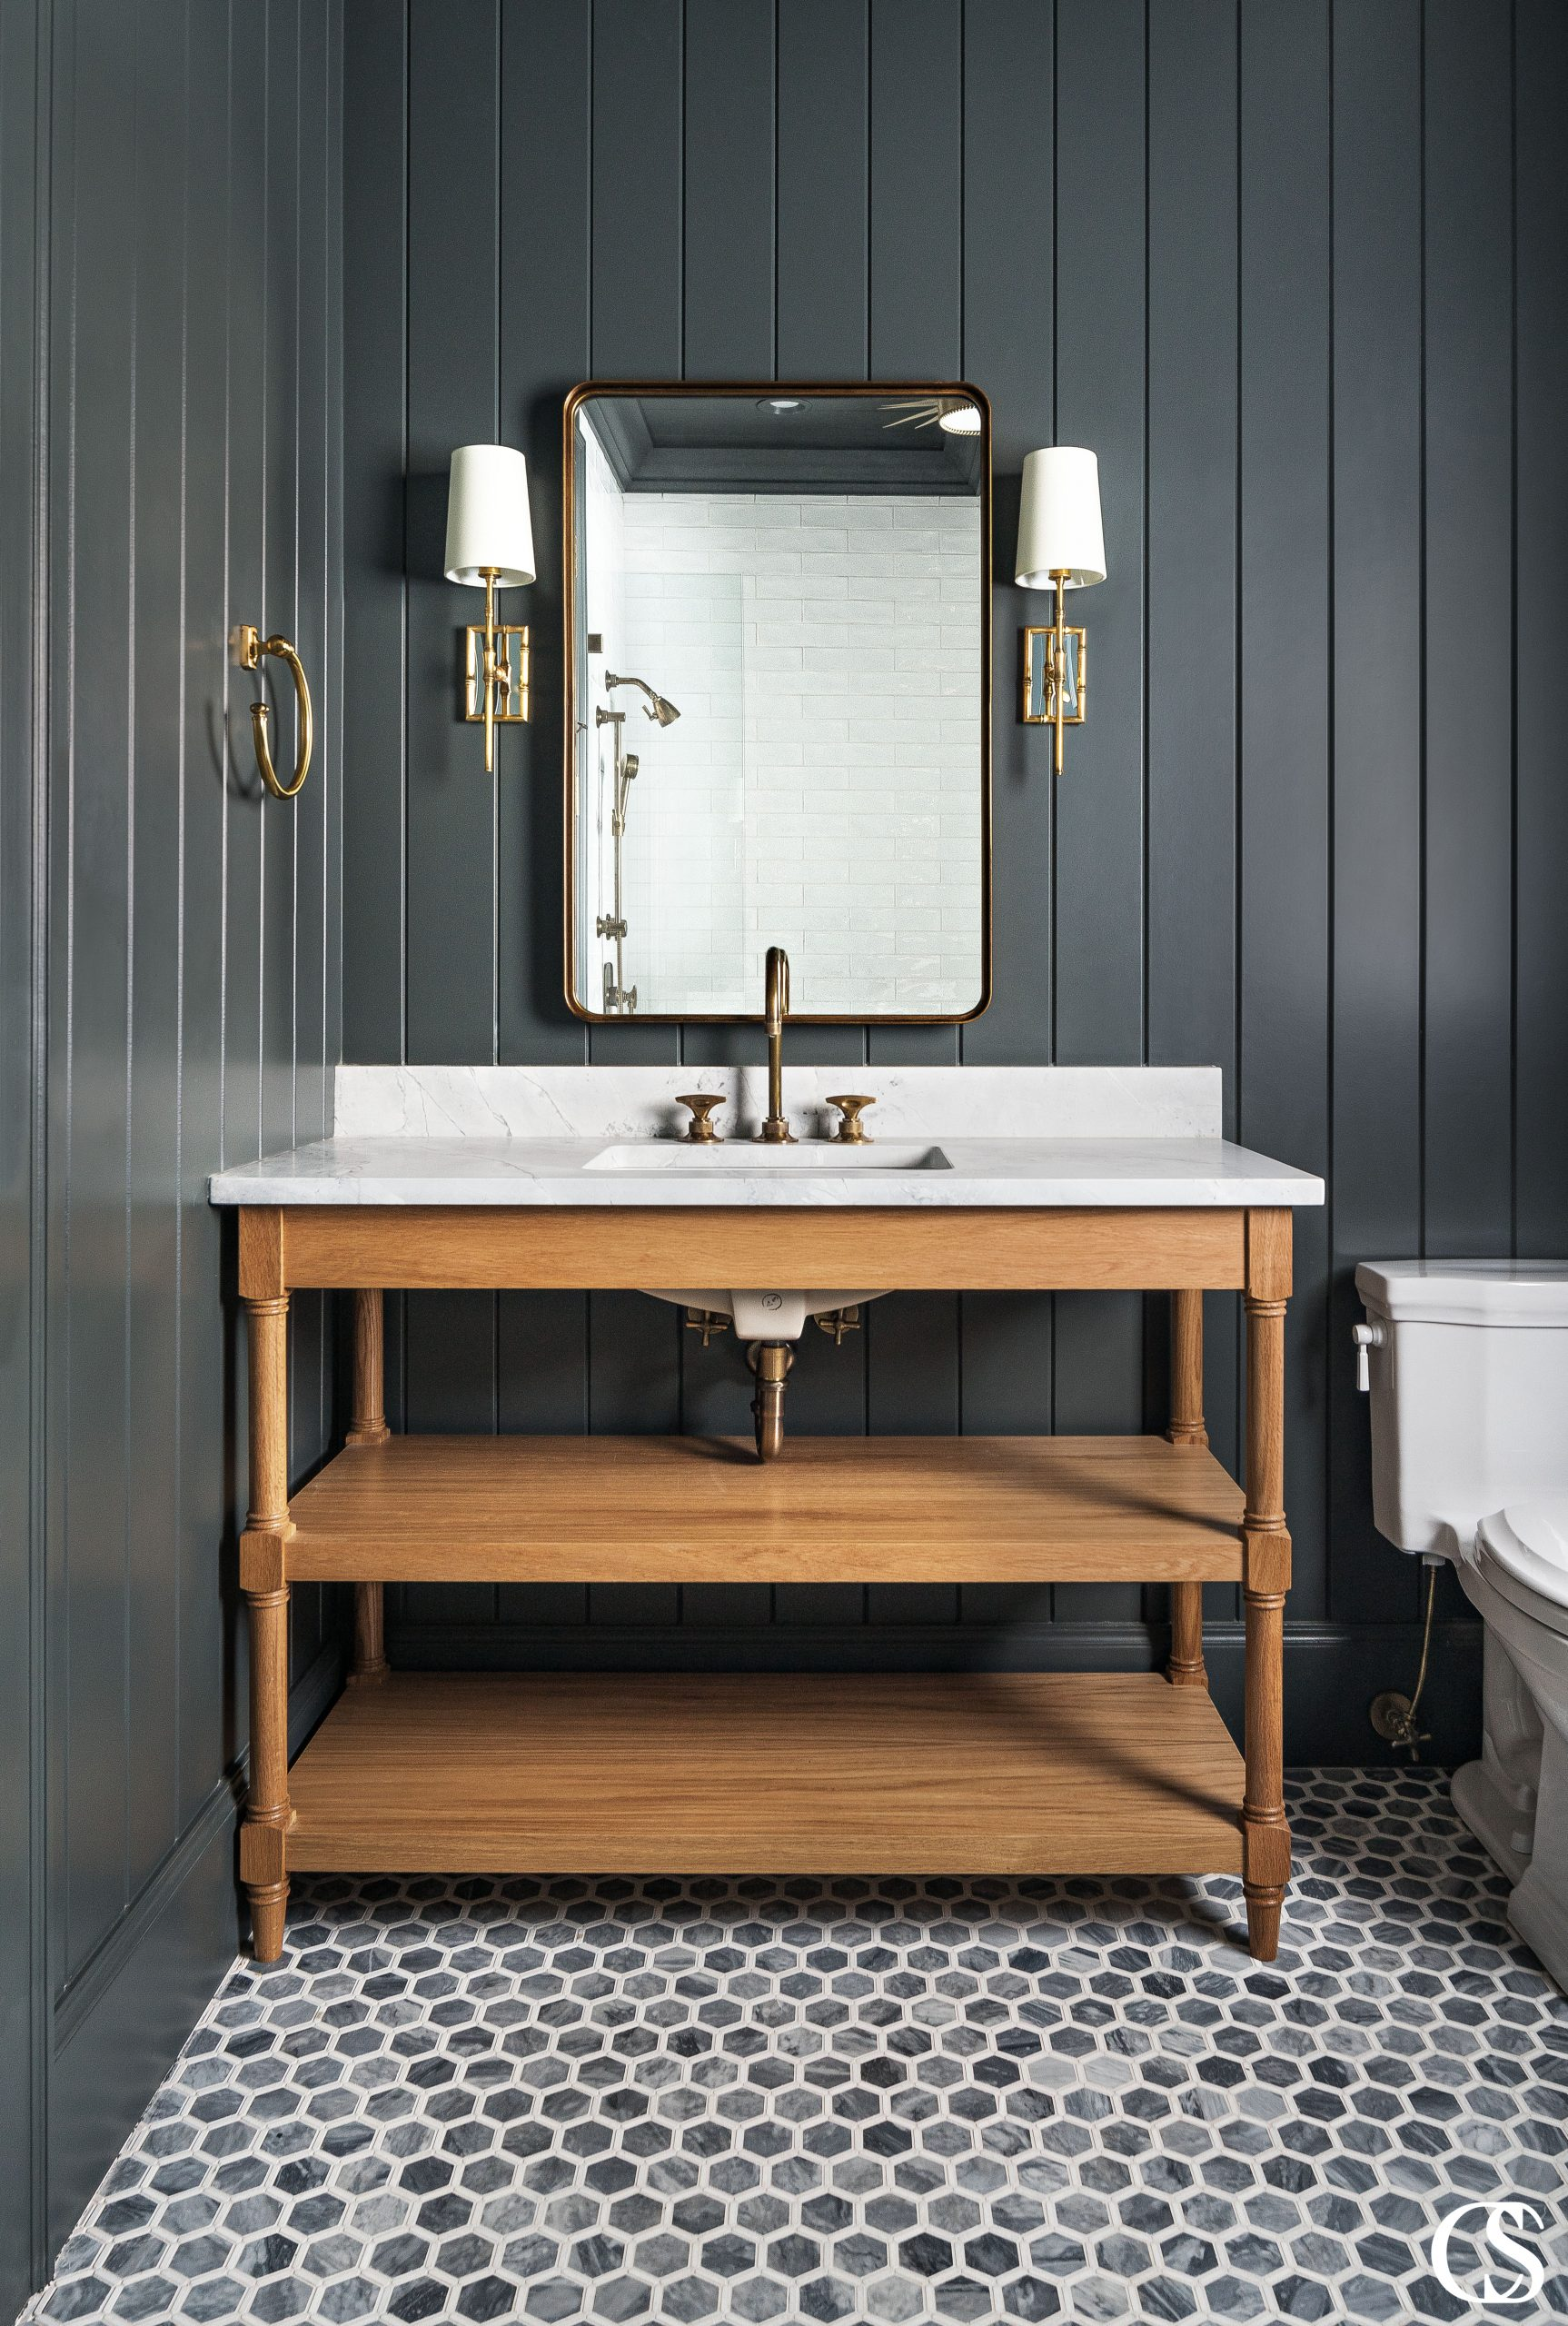 Vanity cabinets don't have to be built-ins. Free-standing, open bathroom cabinets can have open shelving in lieu of closed cabinets. They also can feature furniture-style details.